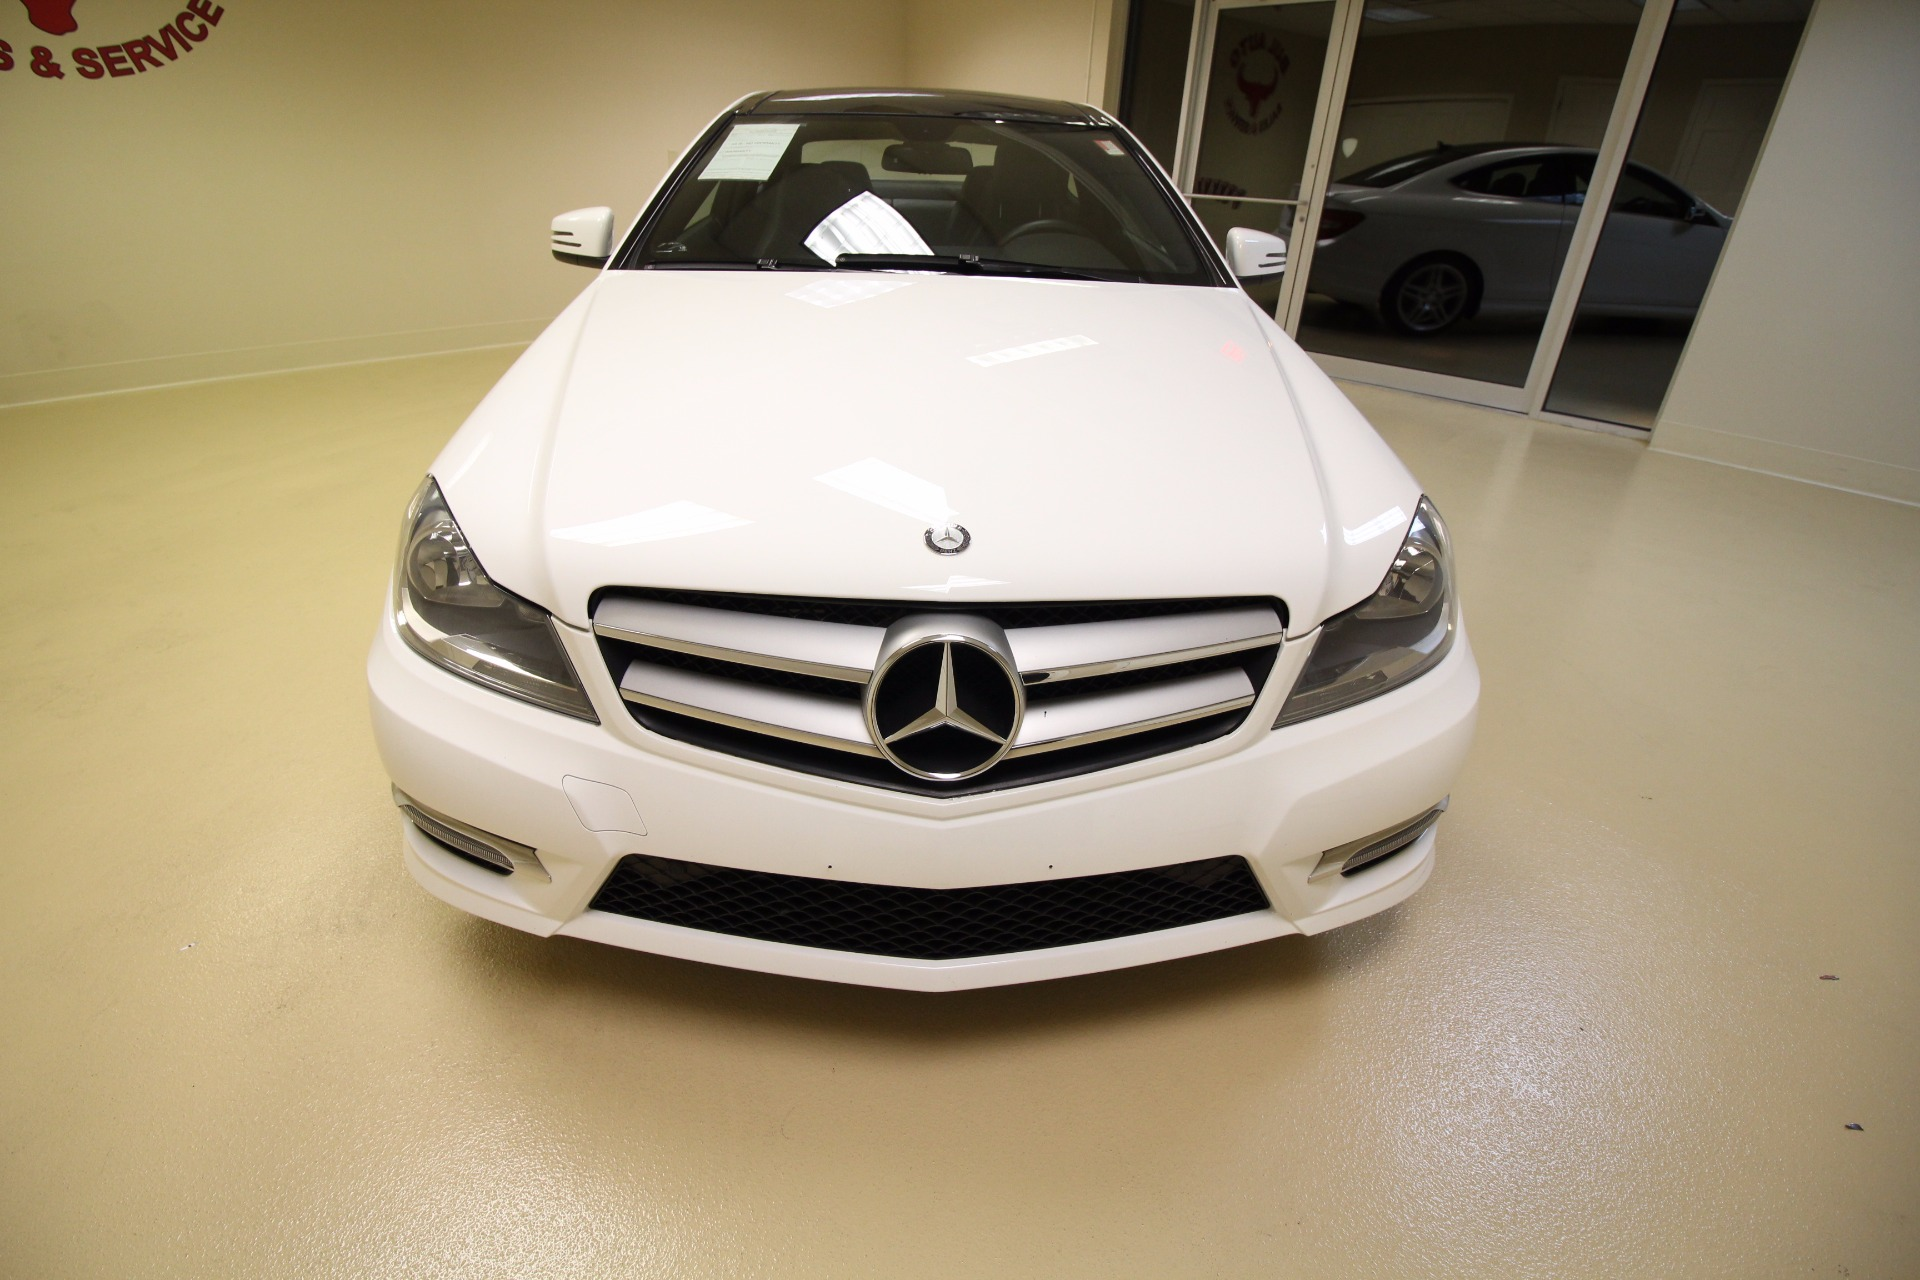 2013 Mercedes-Benz C-Class C250 Coupe Stock # 17061 for sale